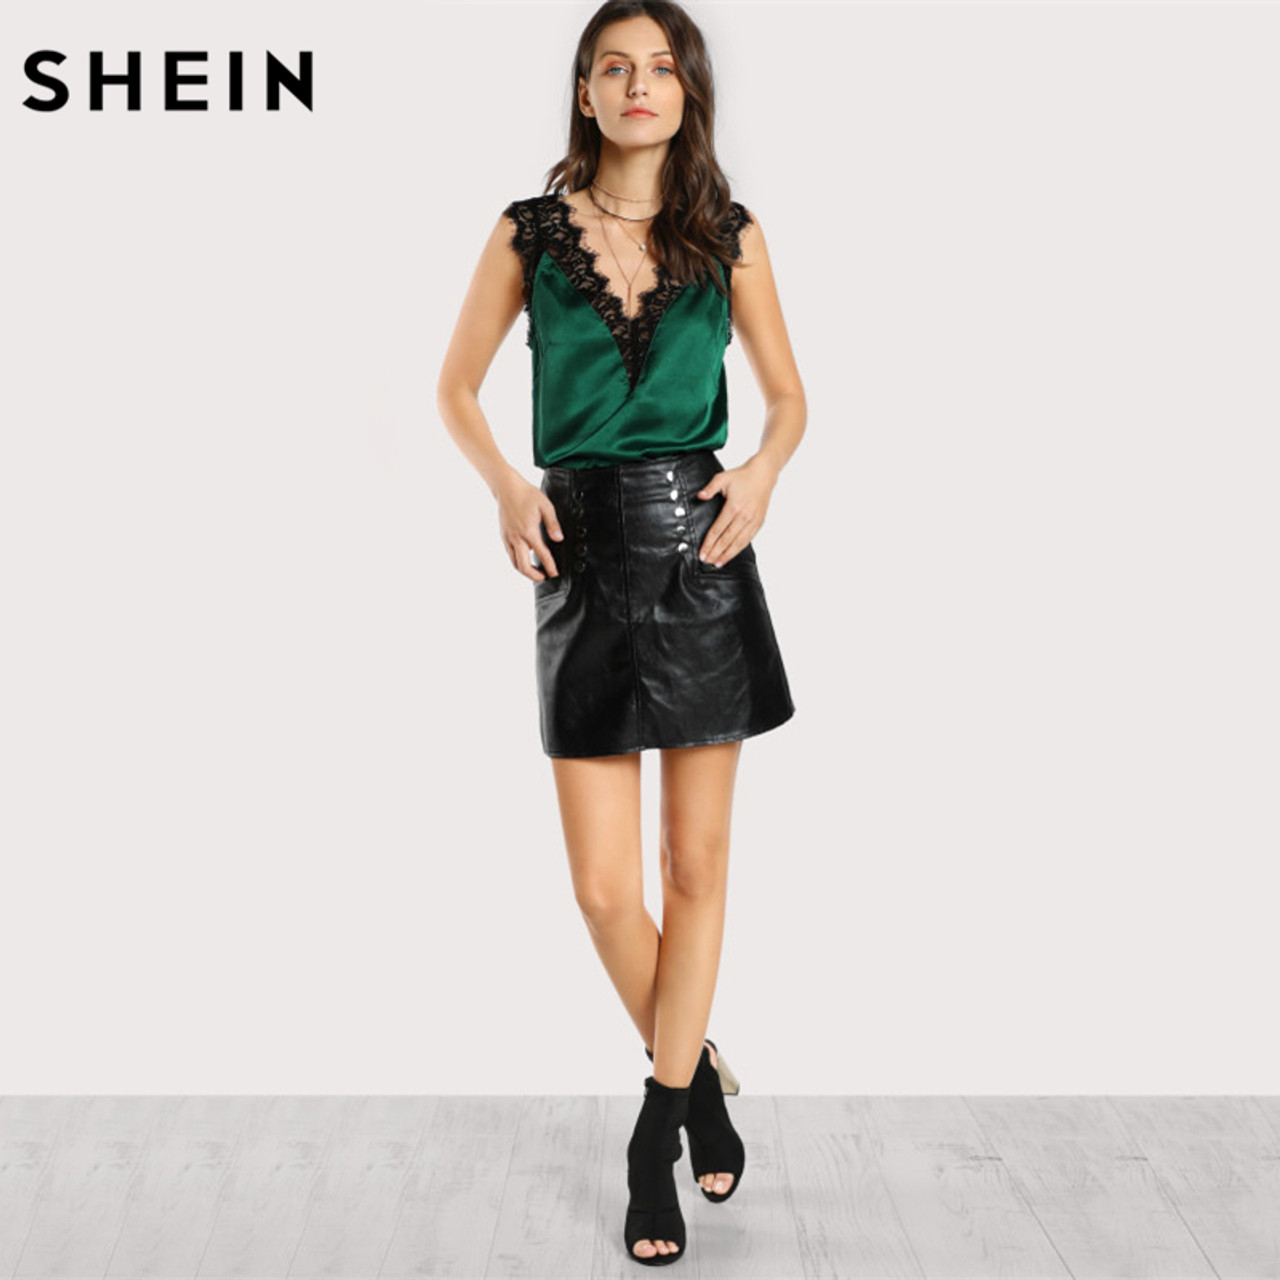 338712ecb25 SHEIN Lace Trim Double V Neck Satin Silk Top Sexy Tops for Women Fitness  Tank Top Green Elegant Women's Sleeveless Tops